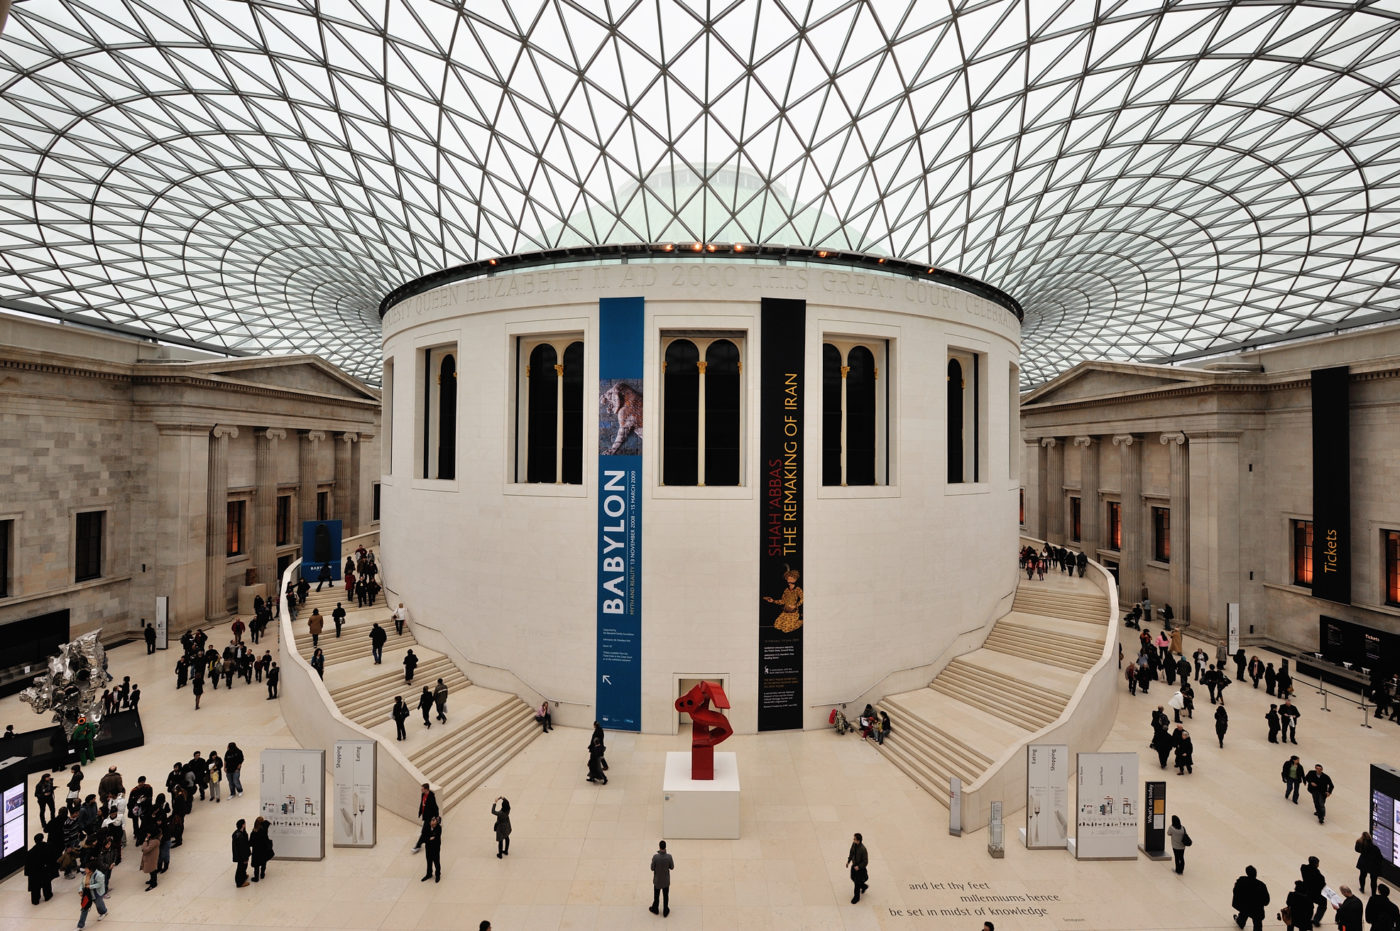 British Museum Great Court interior